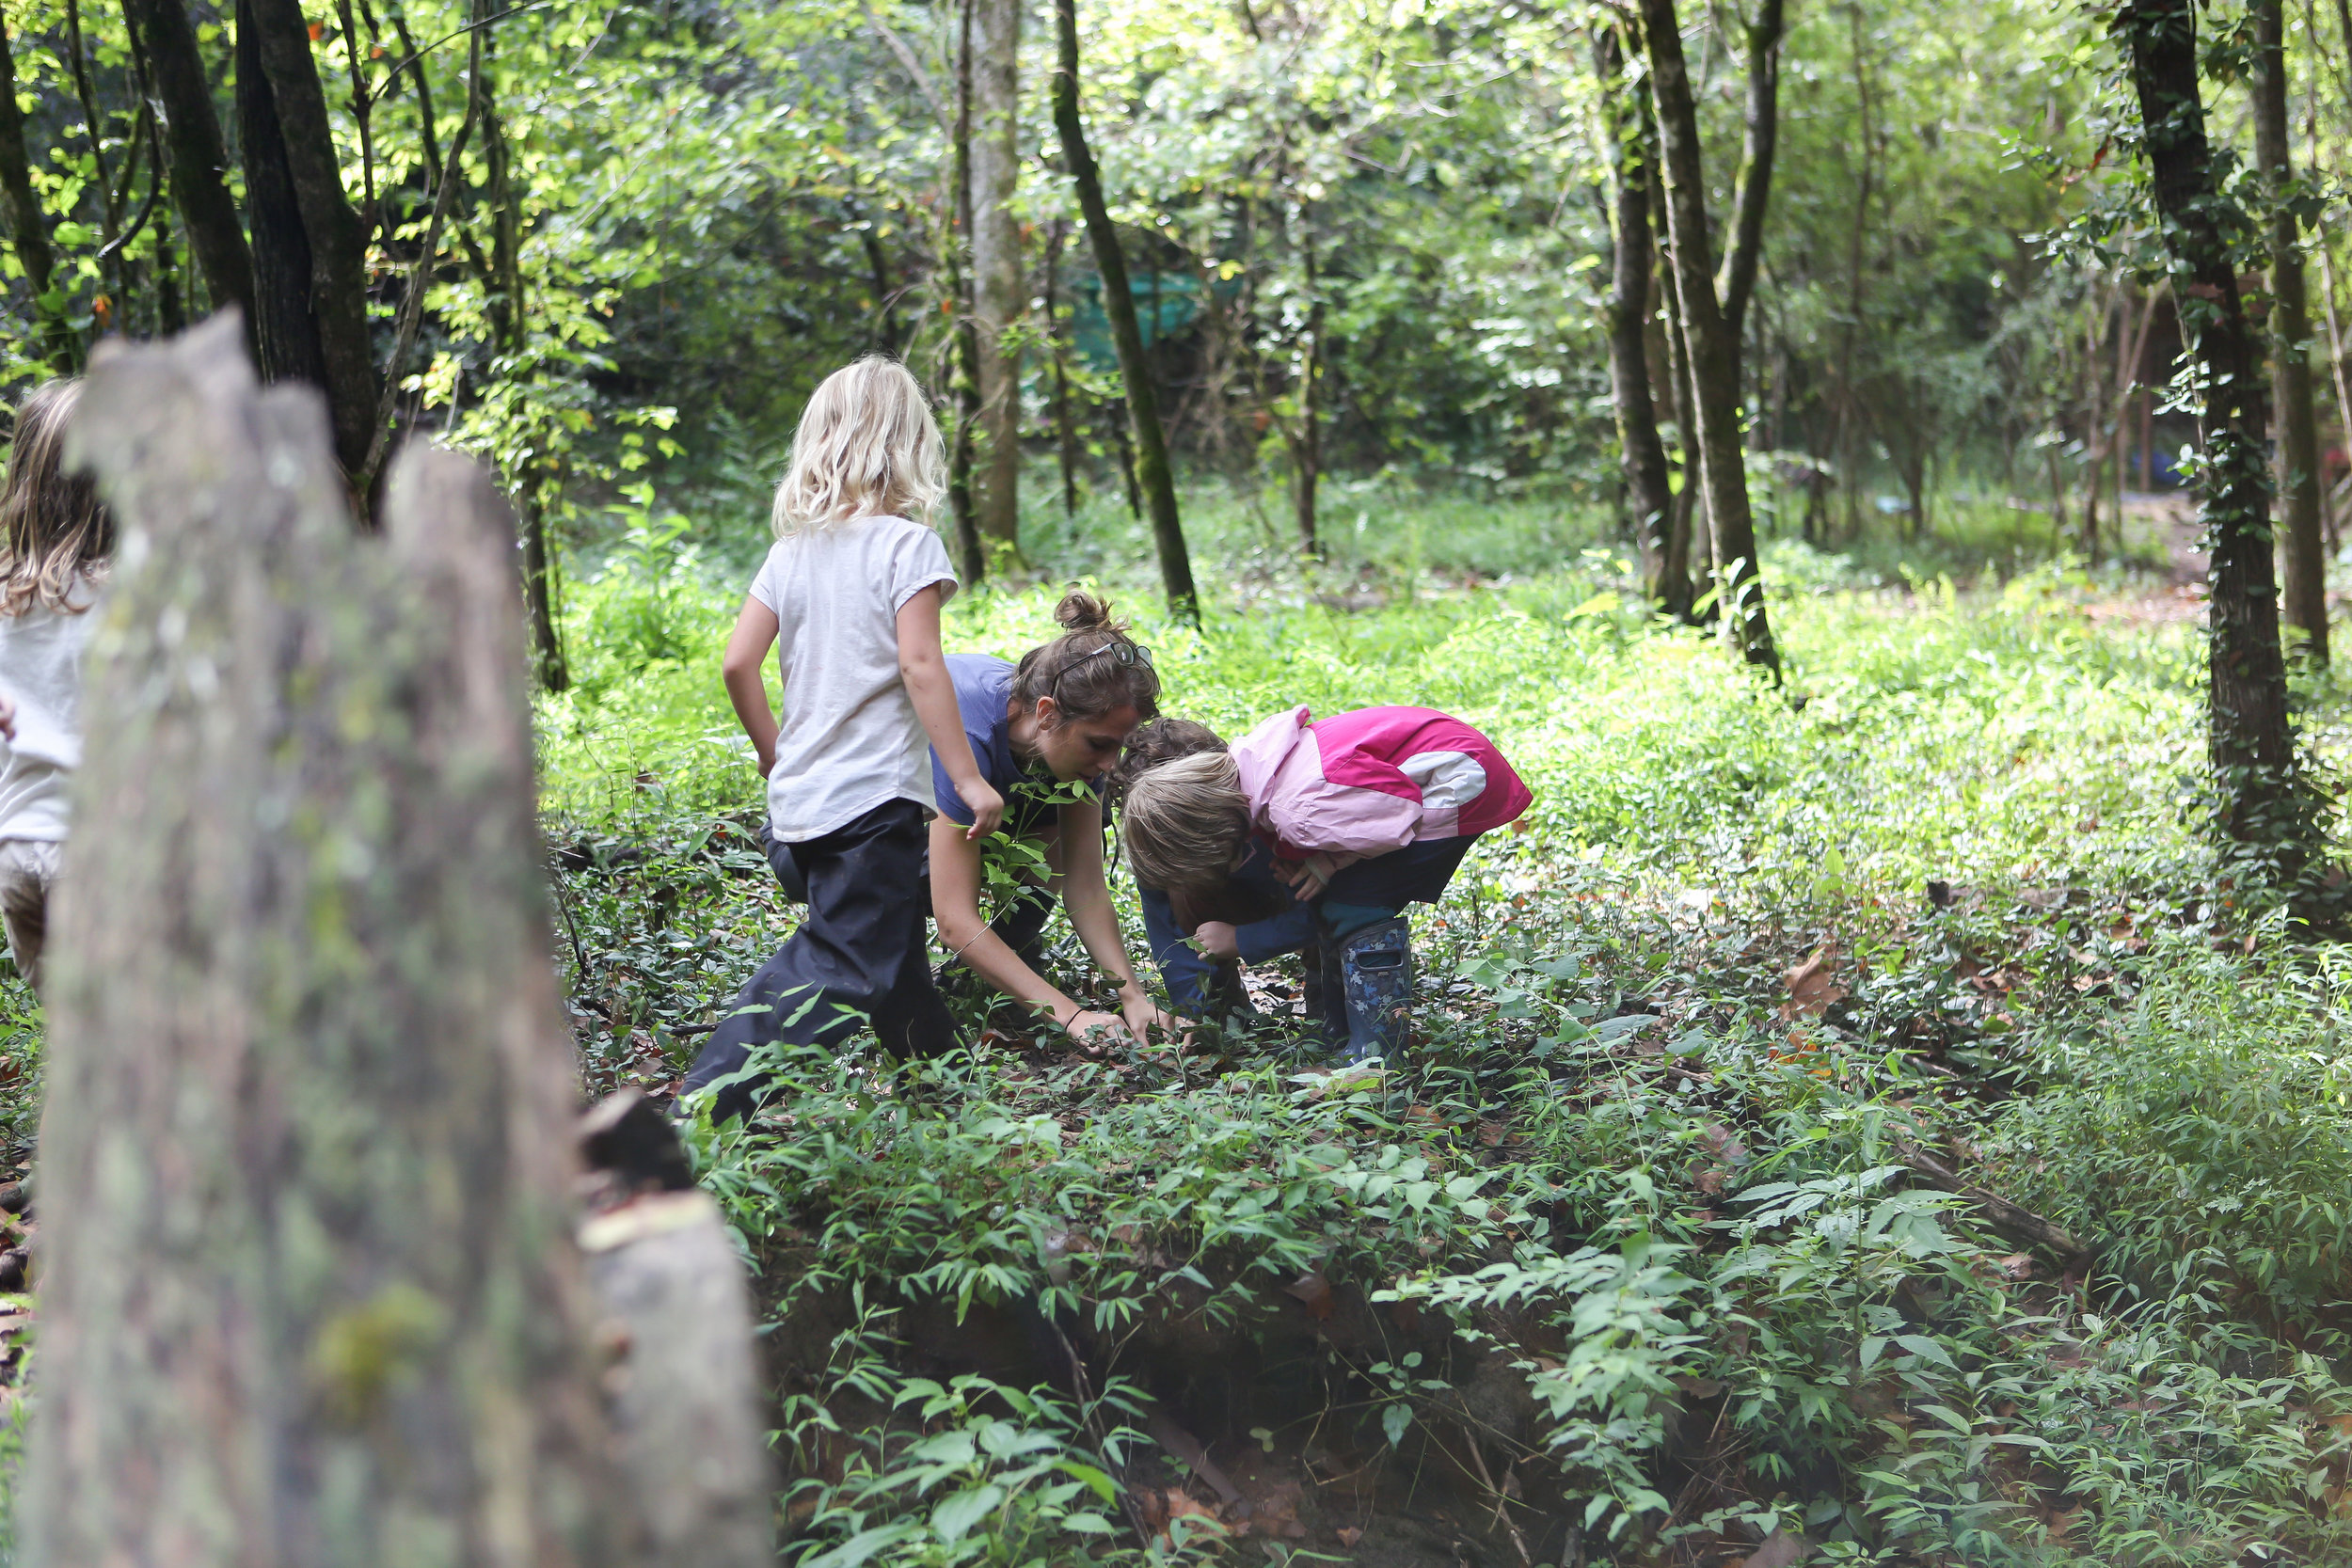 Forest School Finals-Forest School Finals-0090.jpg